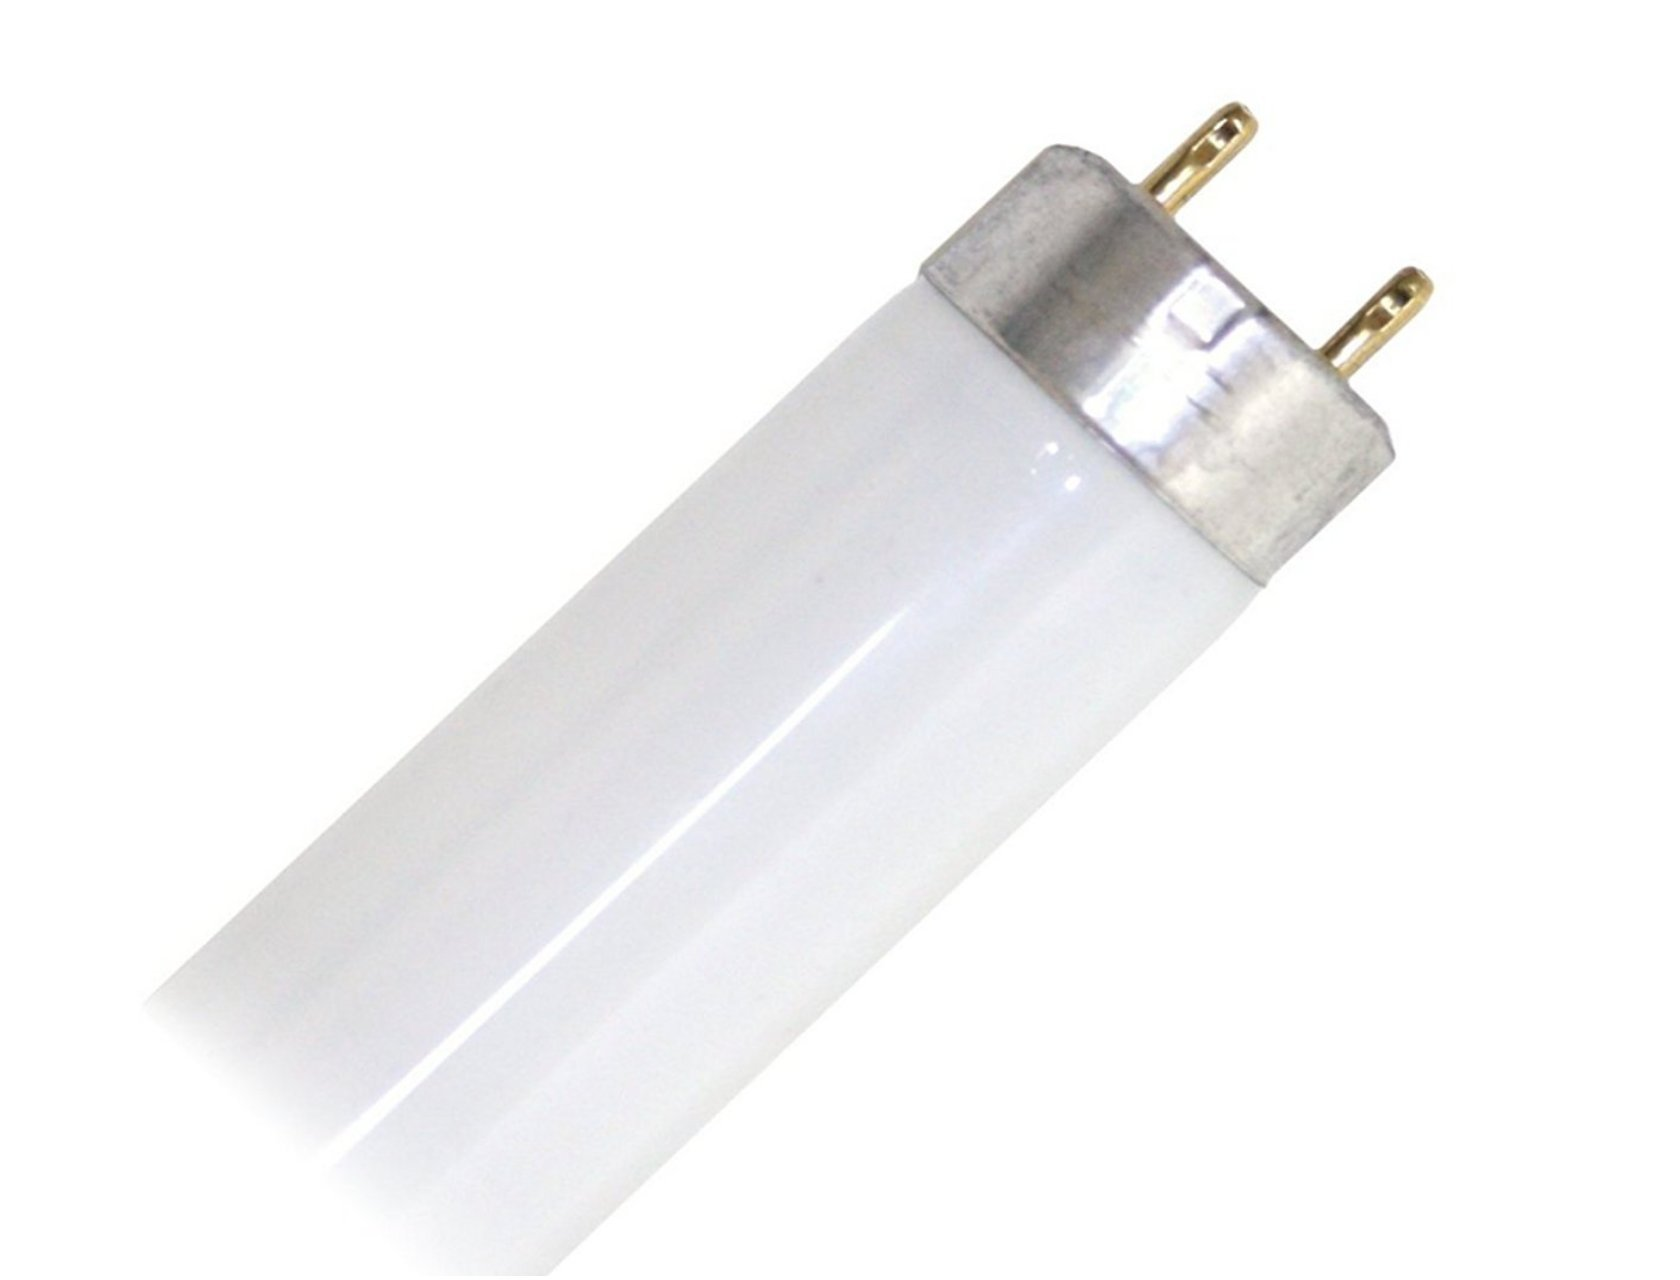 F15T8/CW 15 Watt T8 Fluorescent Tube Light Bulb Cool White, 4100K Replaces Philips F15T8/COOL White PLUS/18 Alto F15T8/CW/ALTO F15T8/CW/ECO GE F15T8/SP41